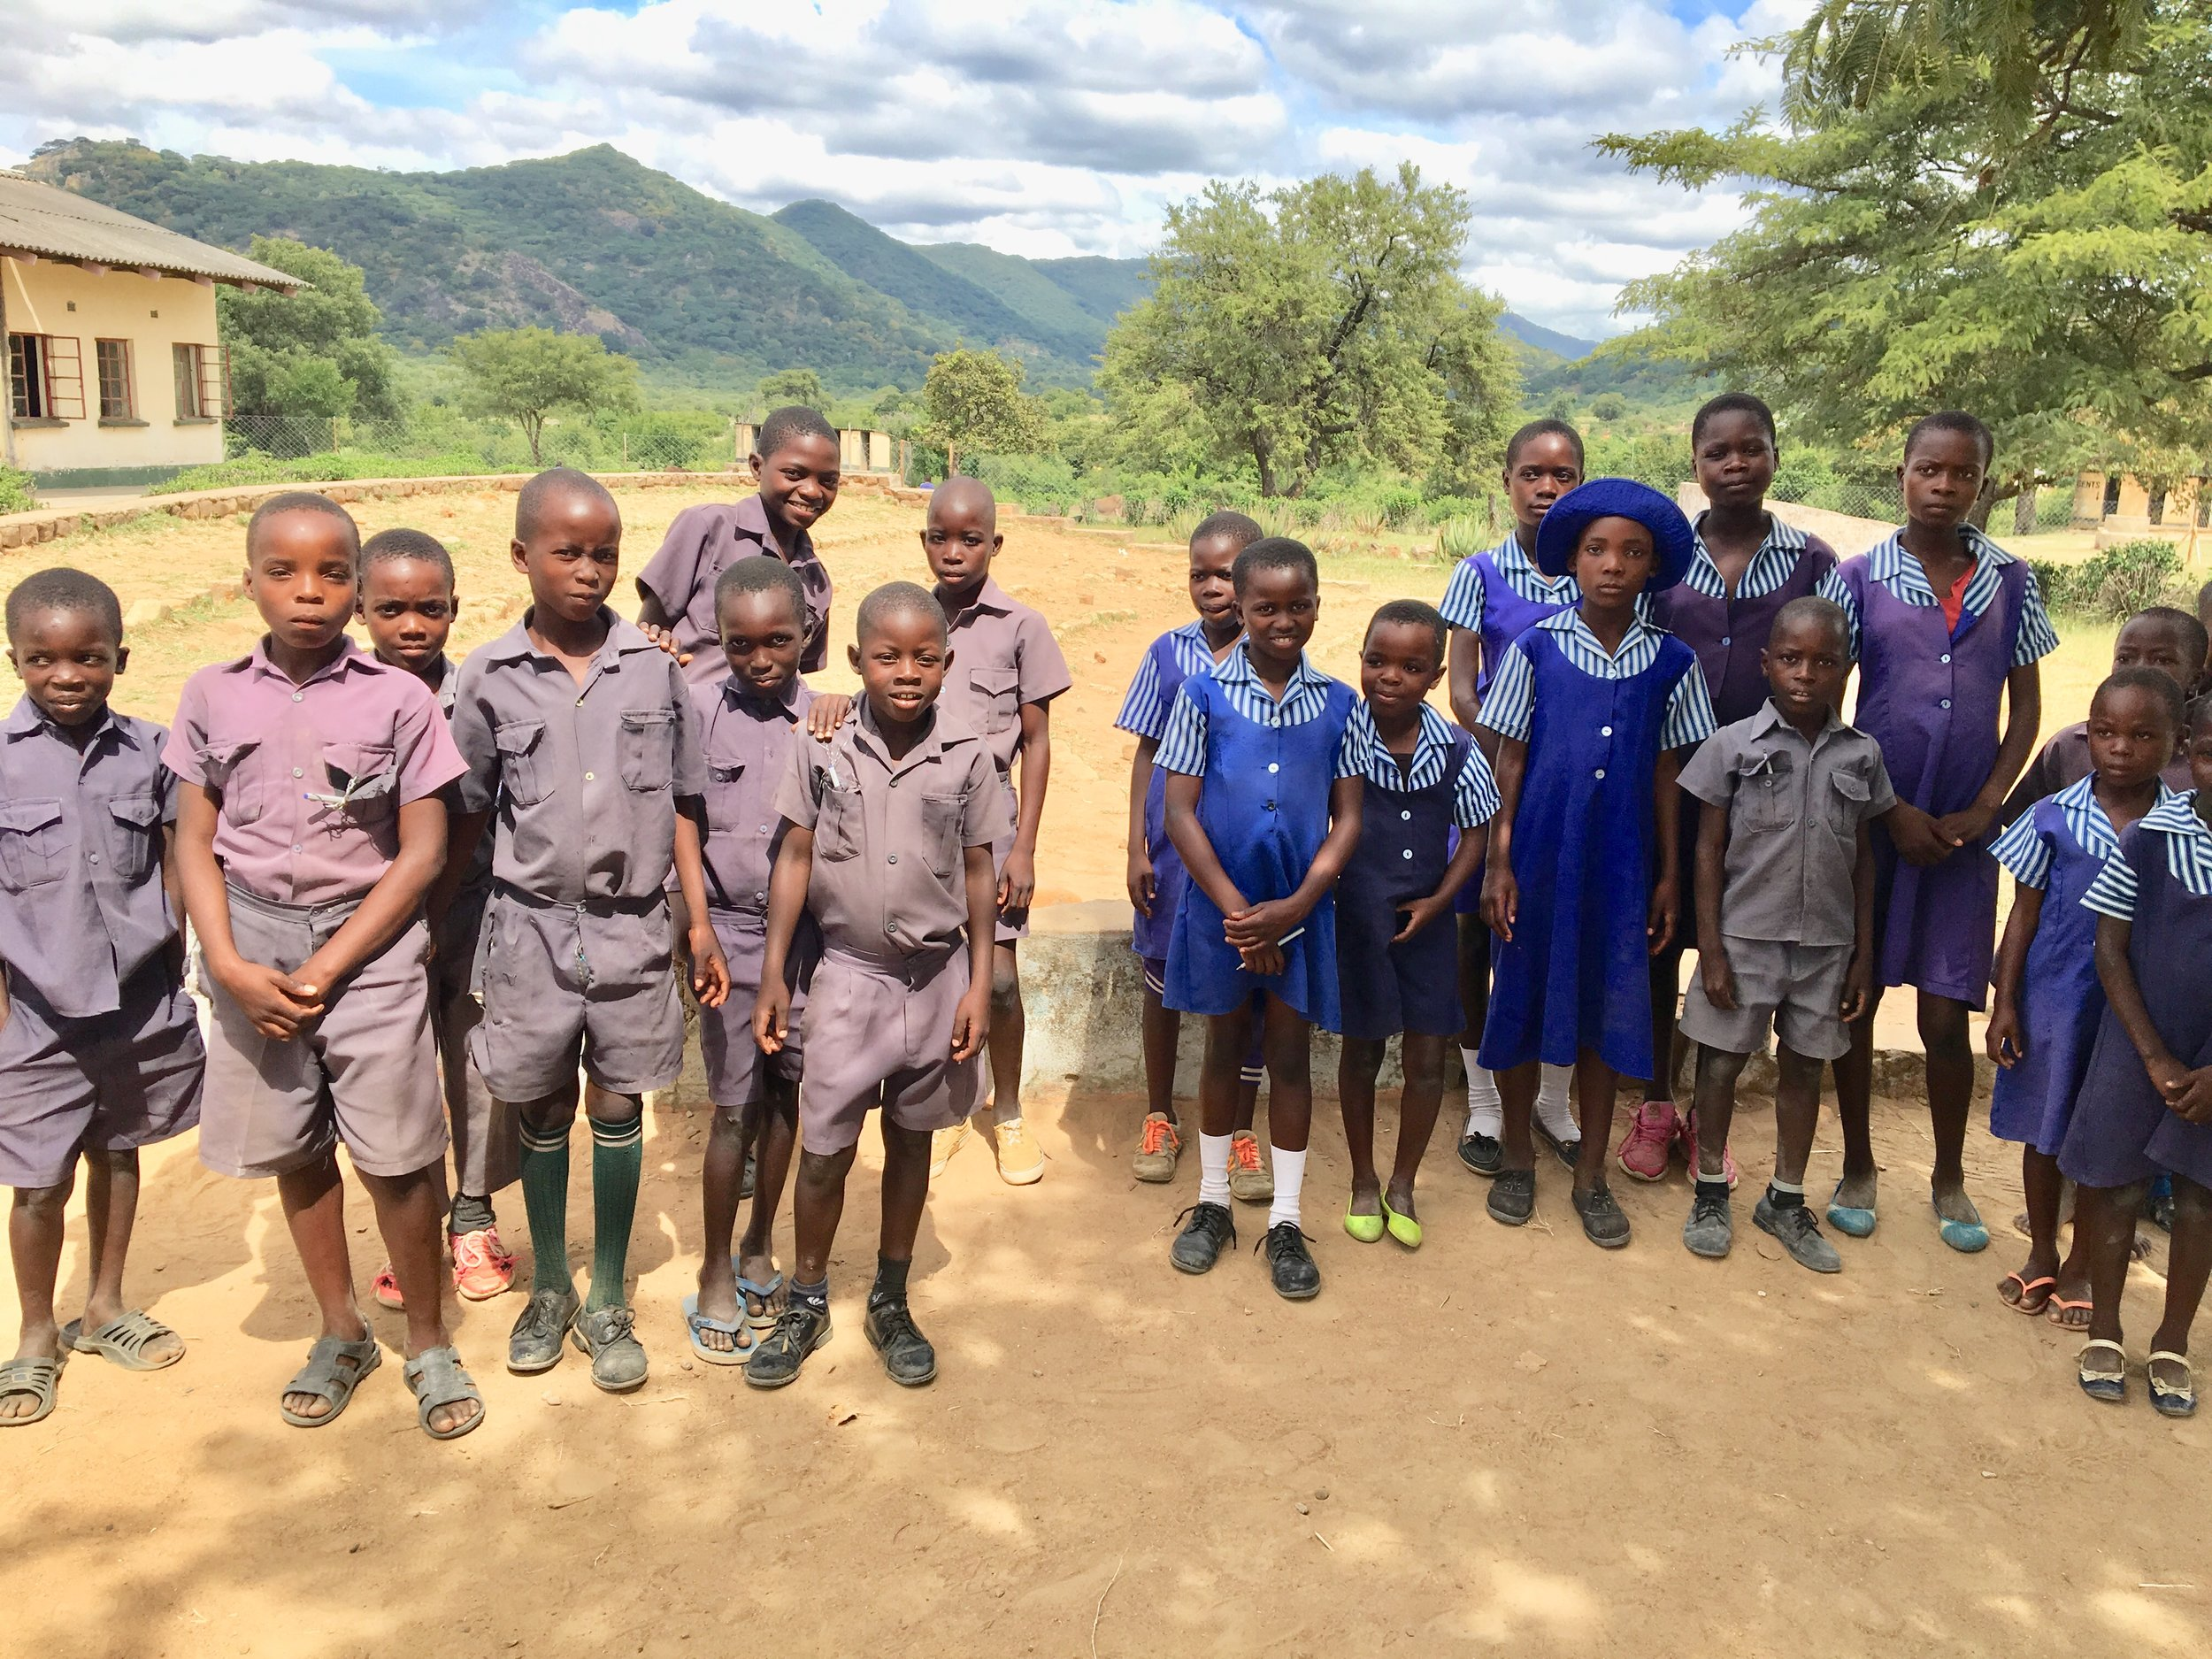 THE ZIENZELE KIDS OF CHAMATUTU PRIMARY SCHOOL!